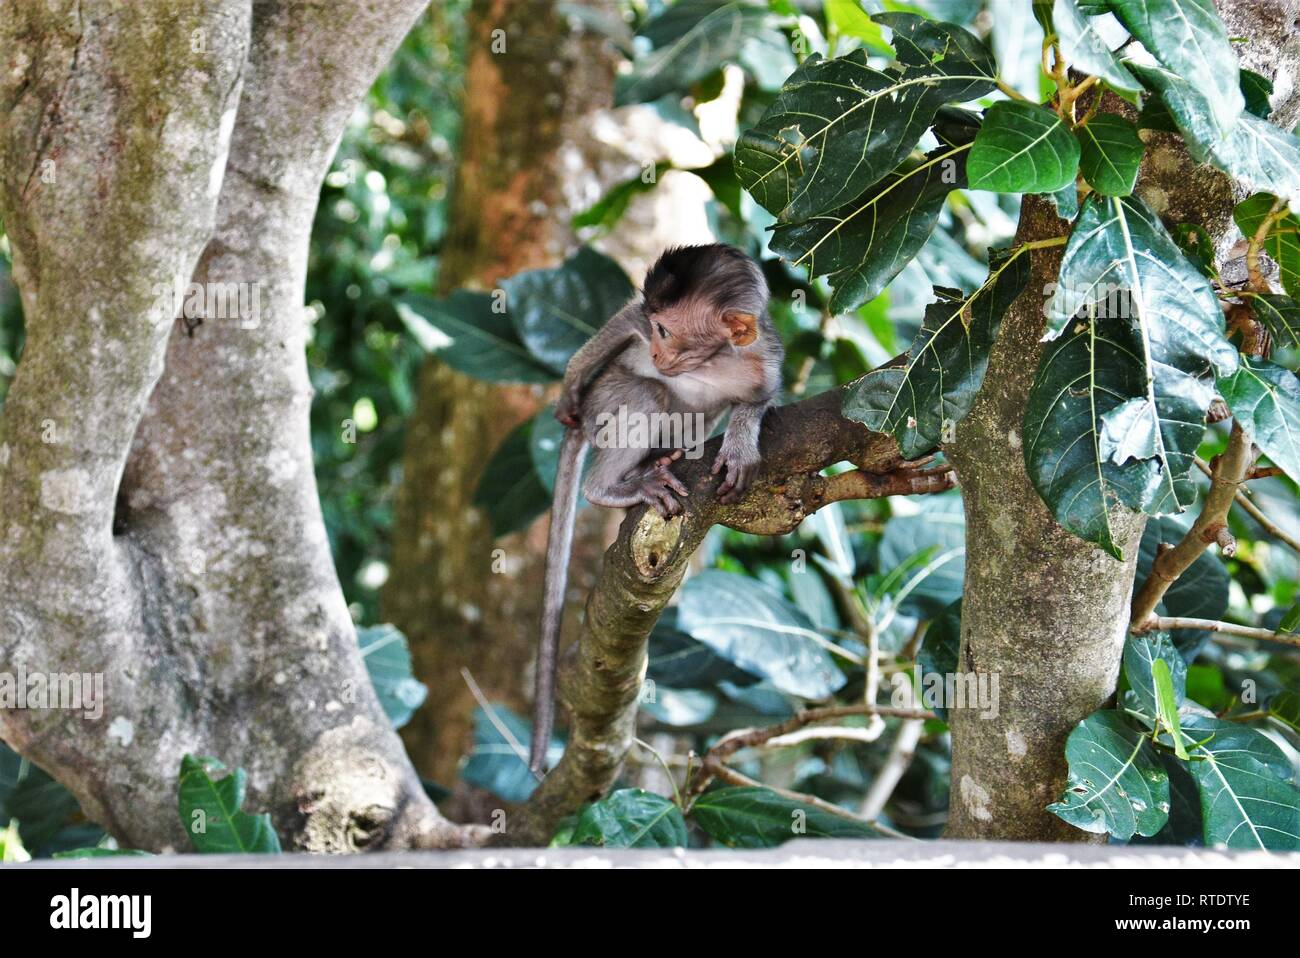 Juvenile Balinese long-tailed monkey in the Sacred Monkey Forest Sanctuary (Ubud Monkey Forest) in Bali, Indonesia. - Stock Image